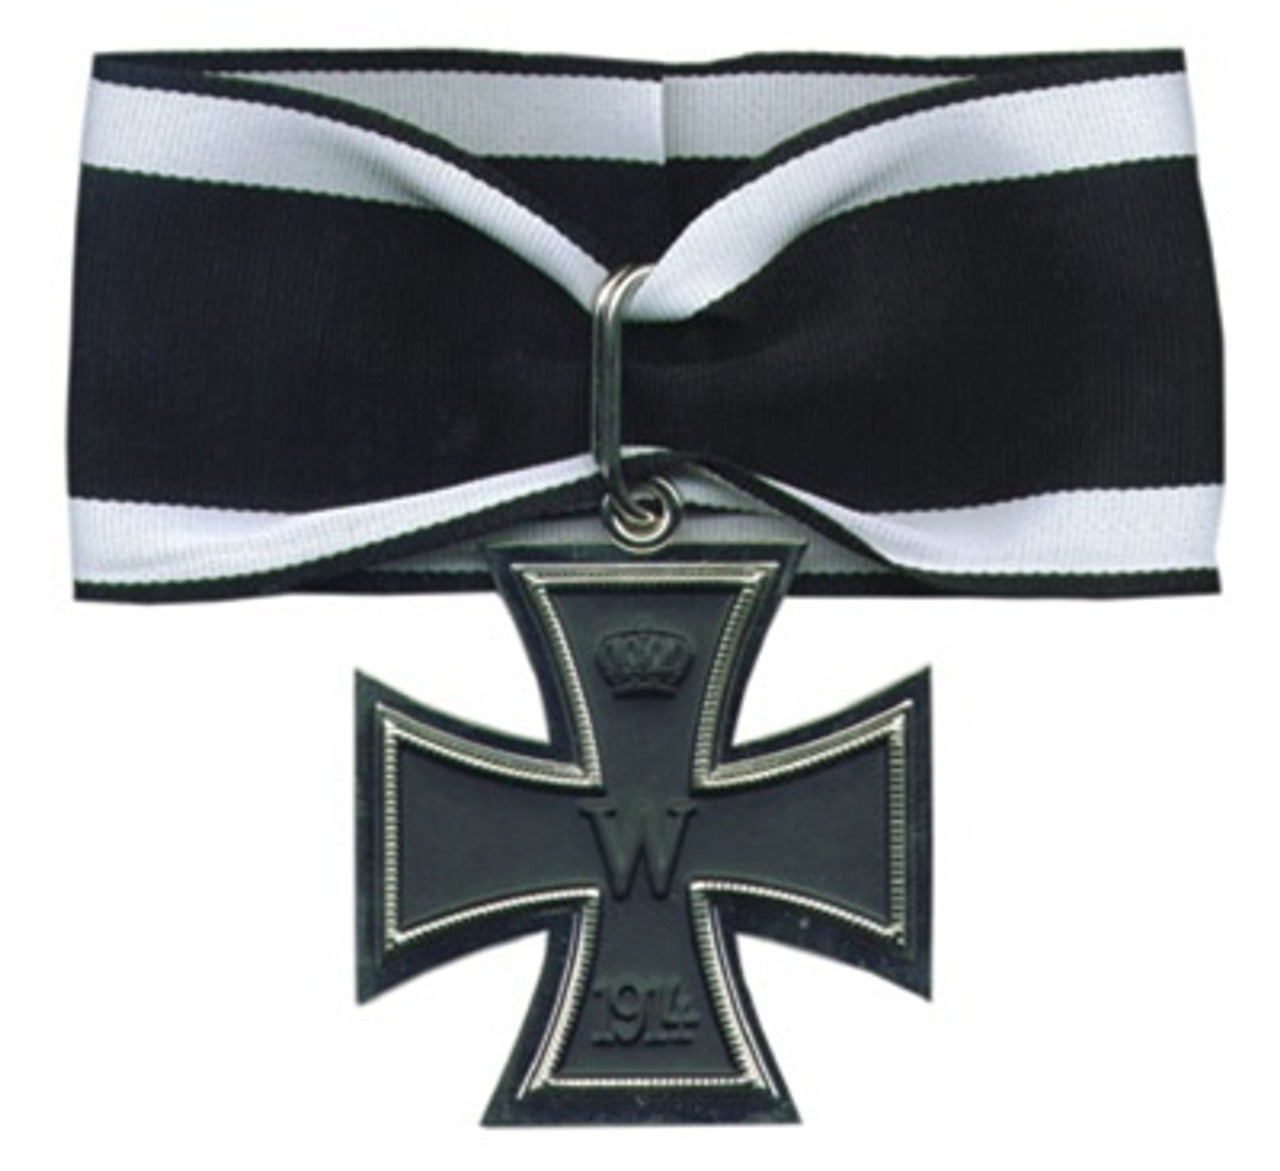 Grand Cross of the Iron Cross (Großkruez) from Hessen Antique